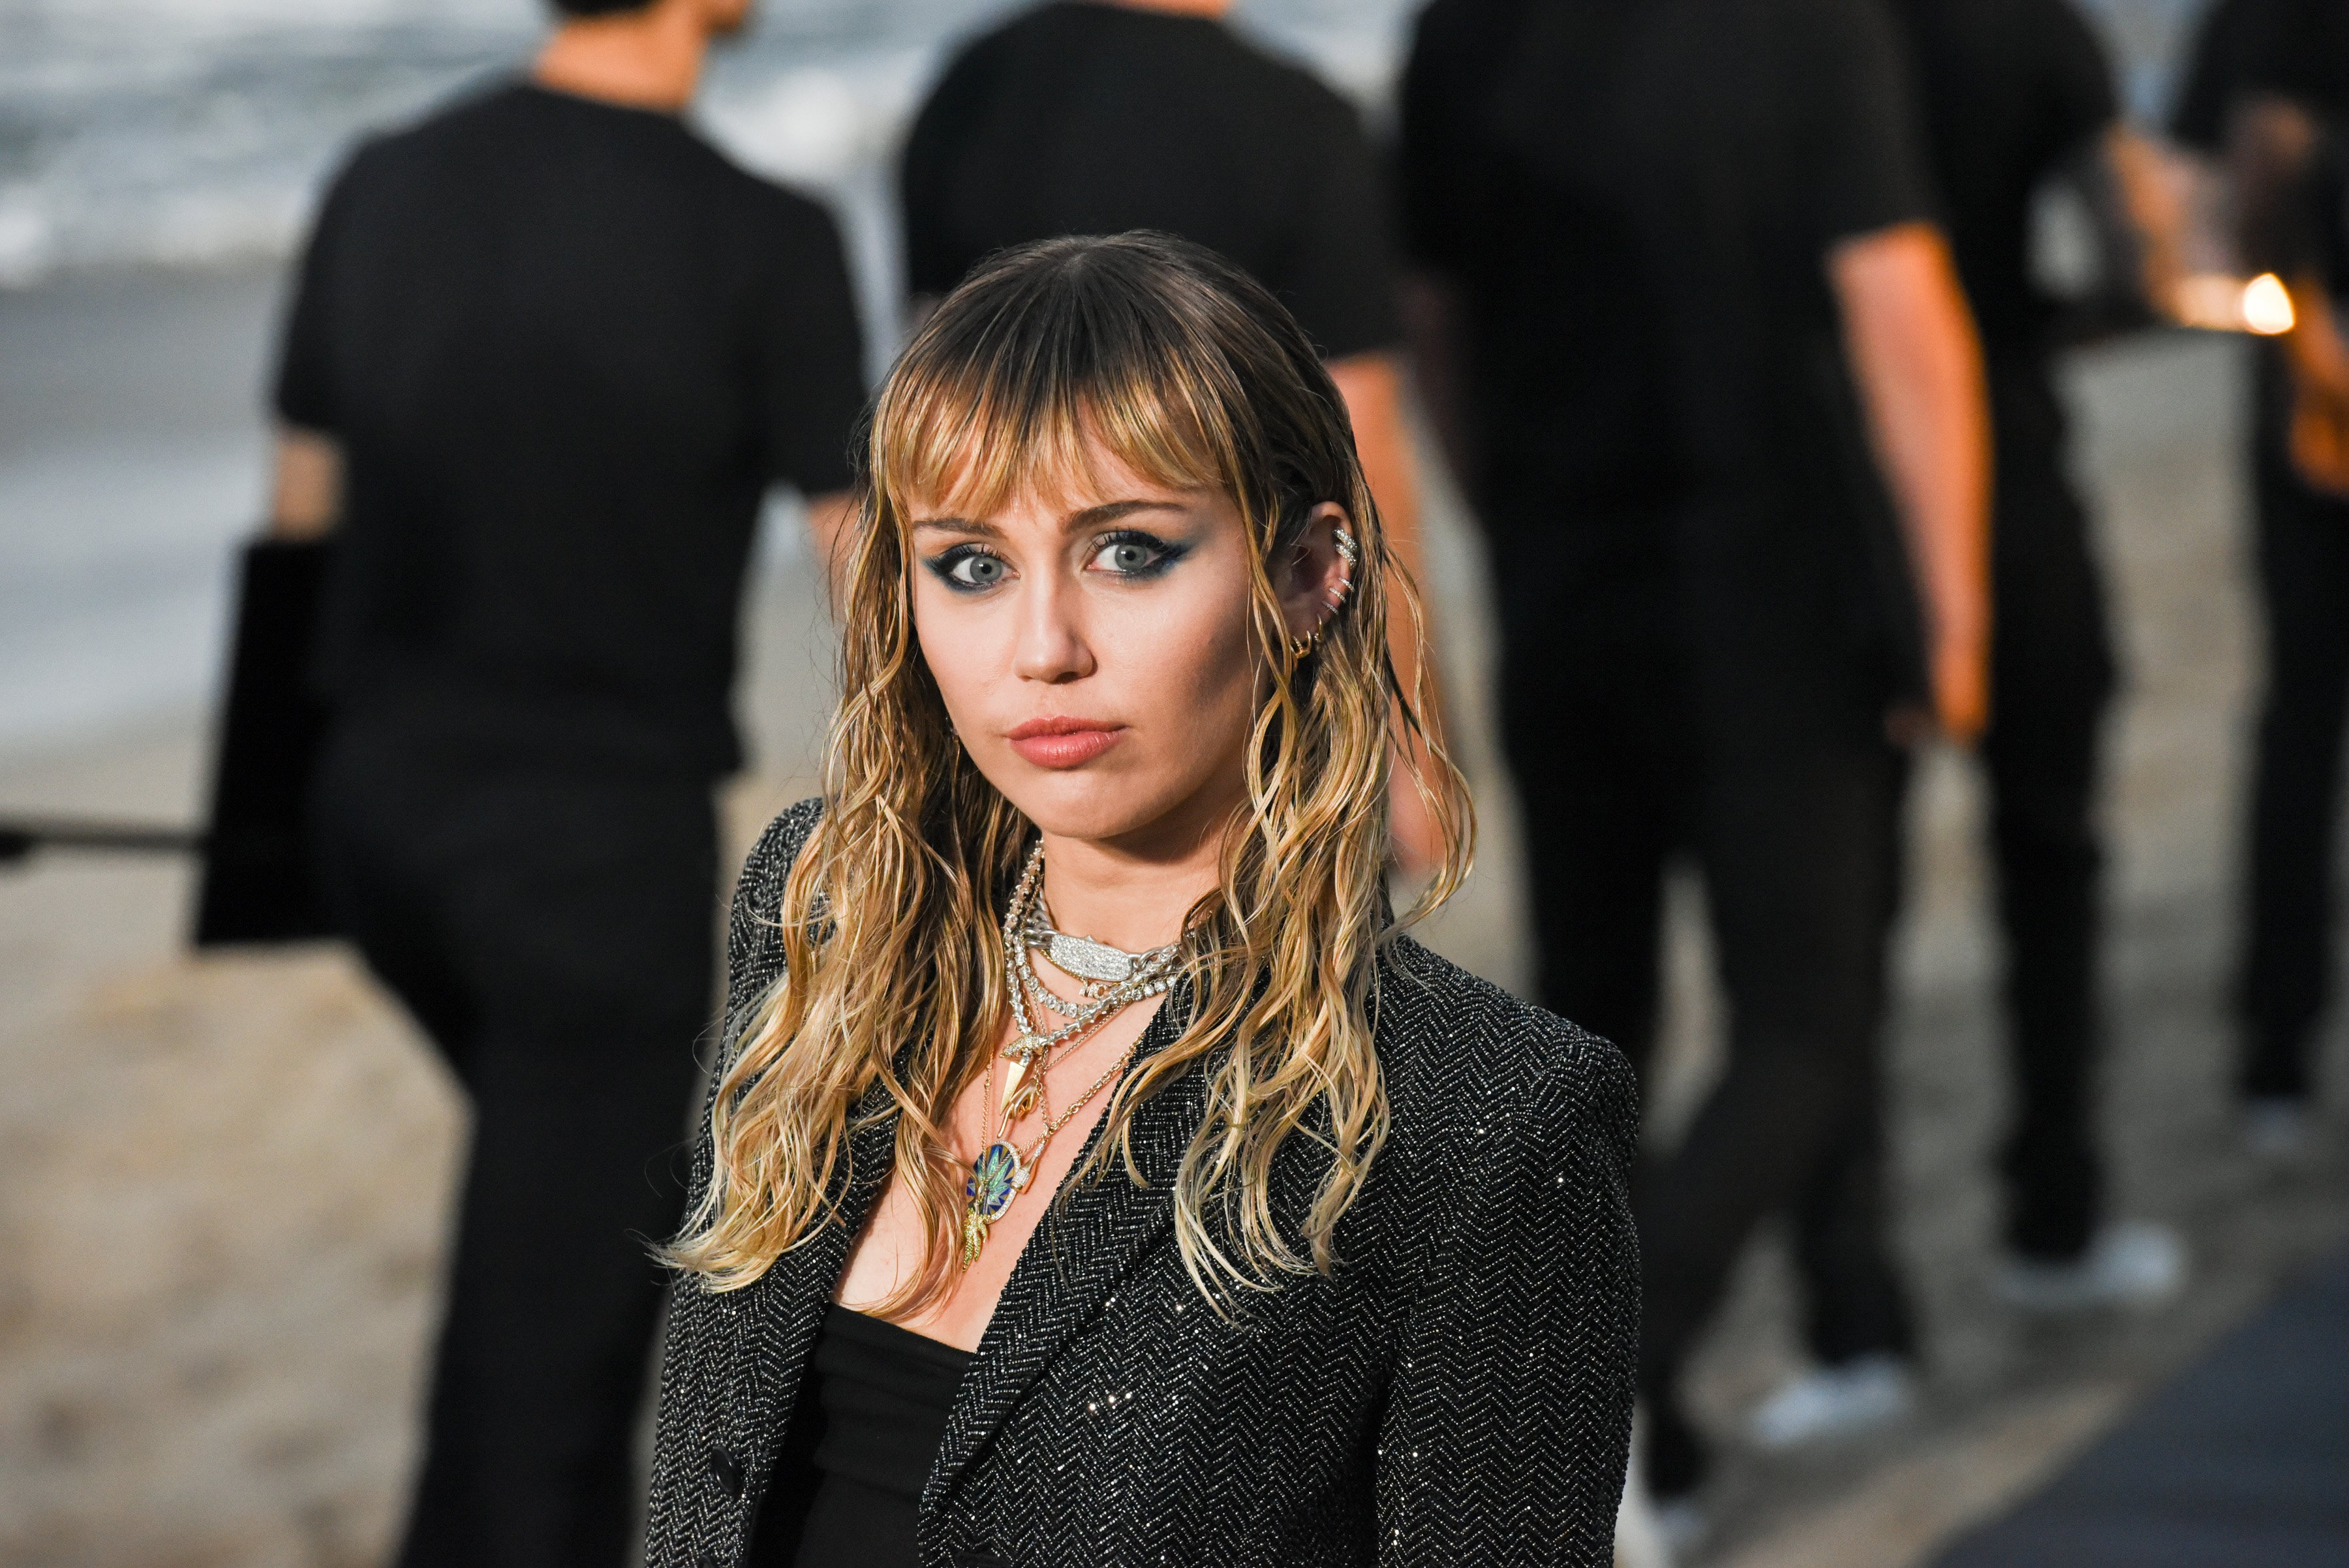 Miley Cyrus at Saint Laurent mens spring summer 20 show on June 06, 2019, in Malibu, California. | Source: Getty Images.